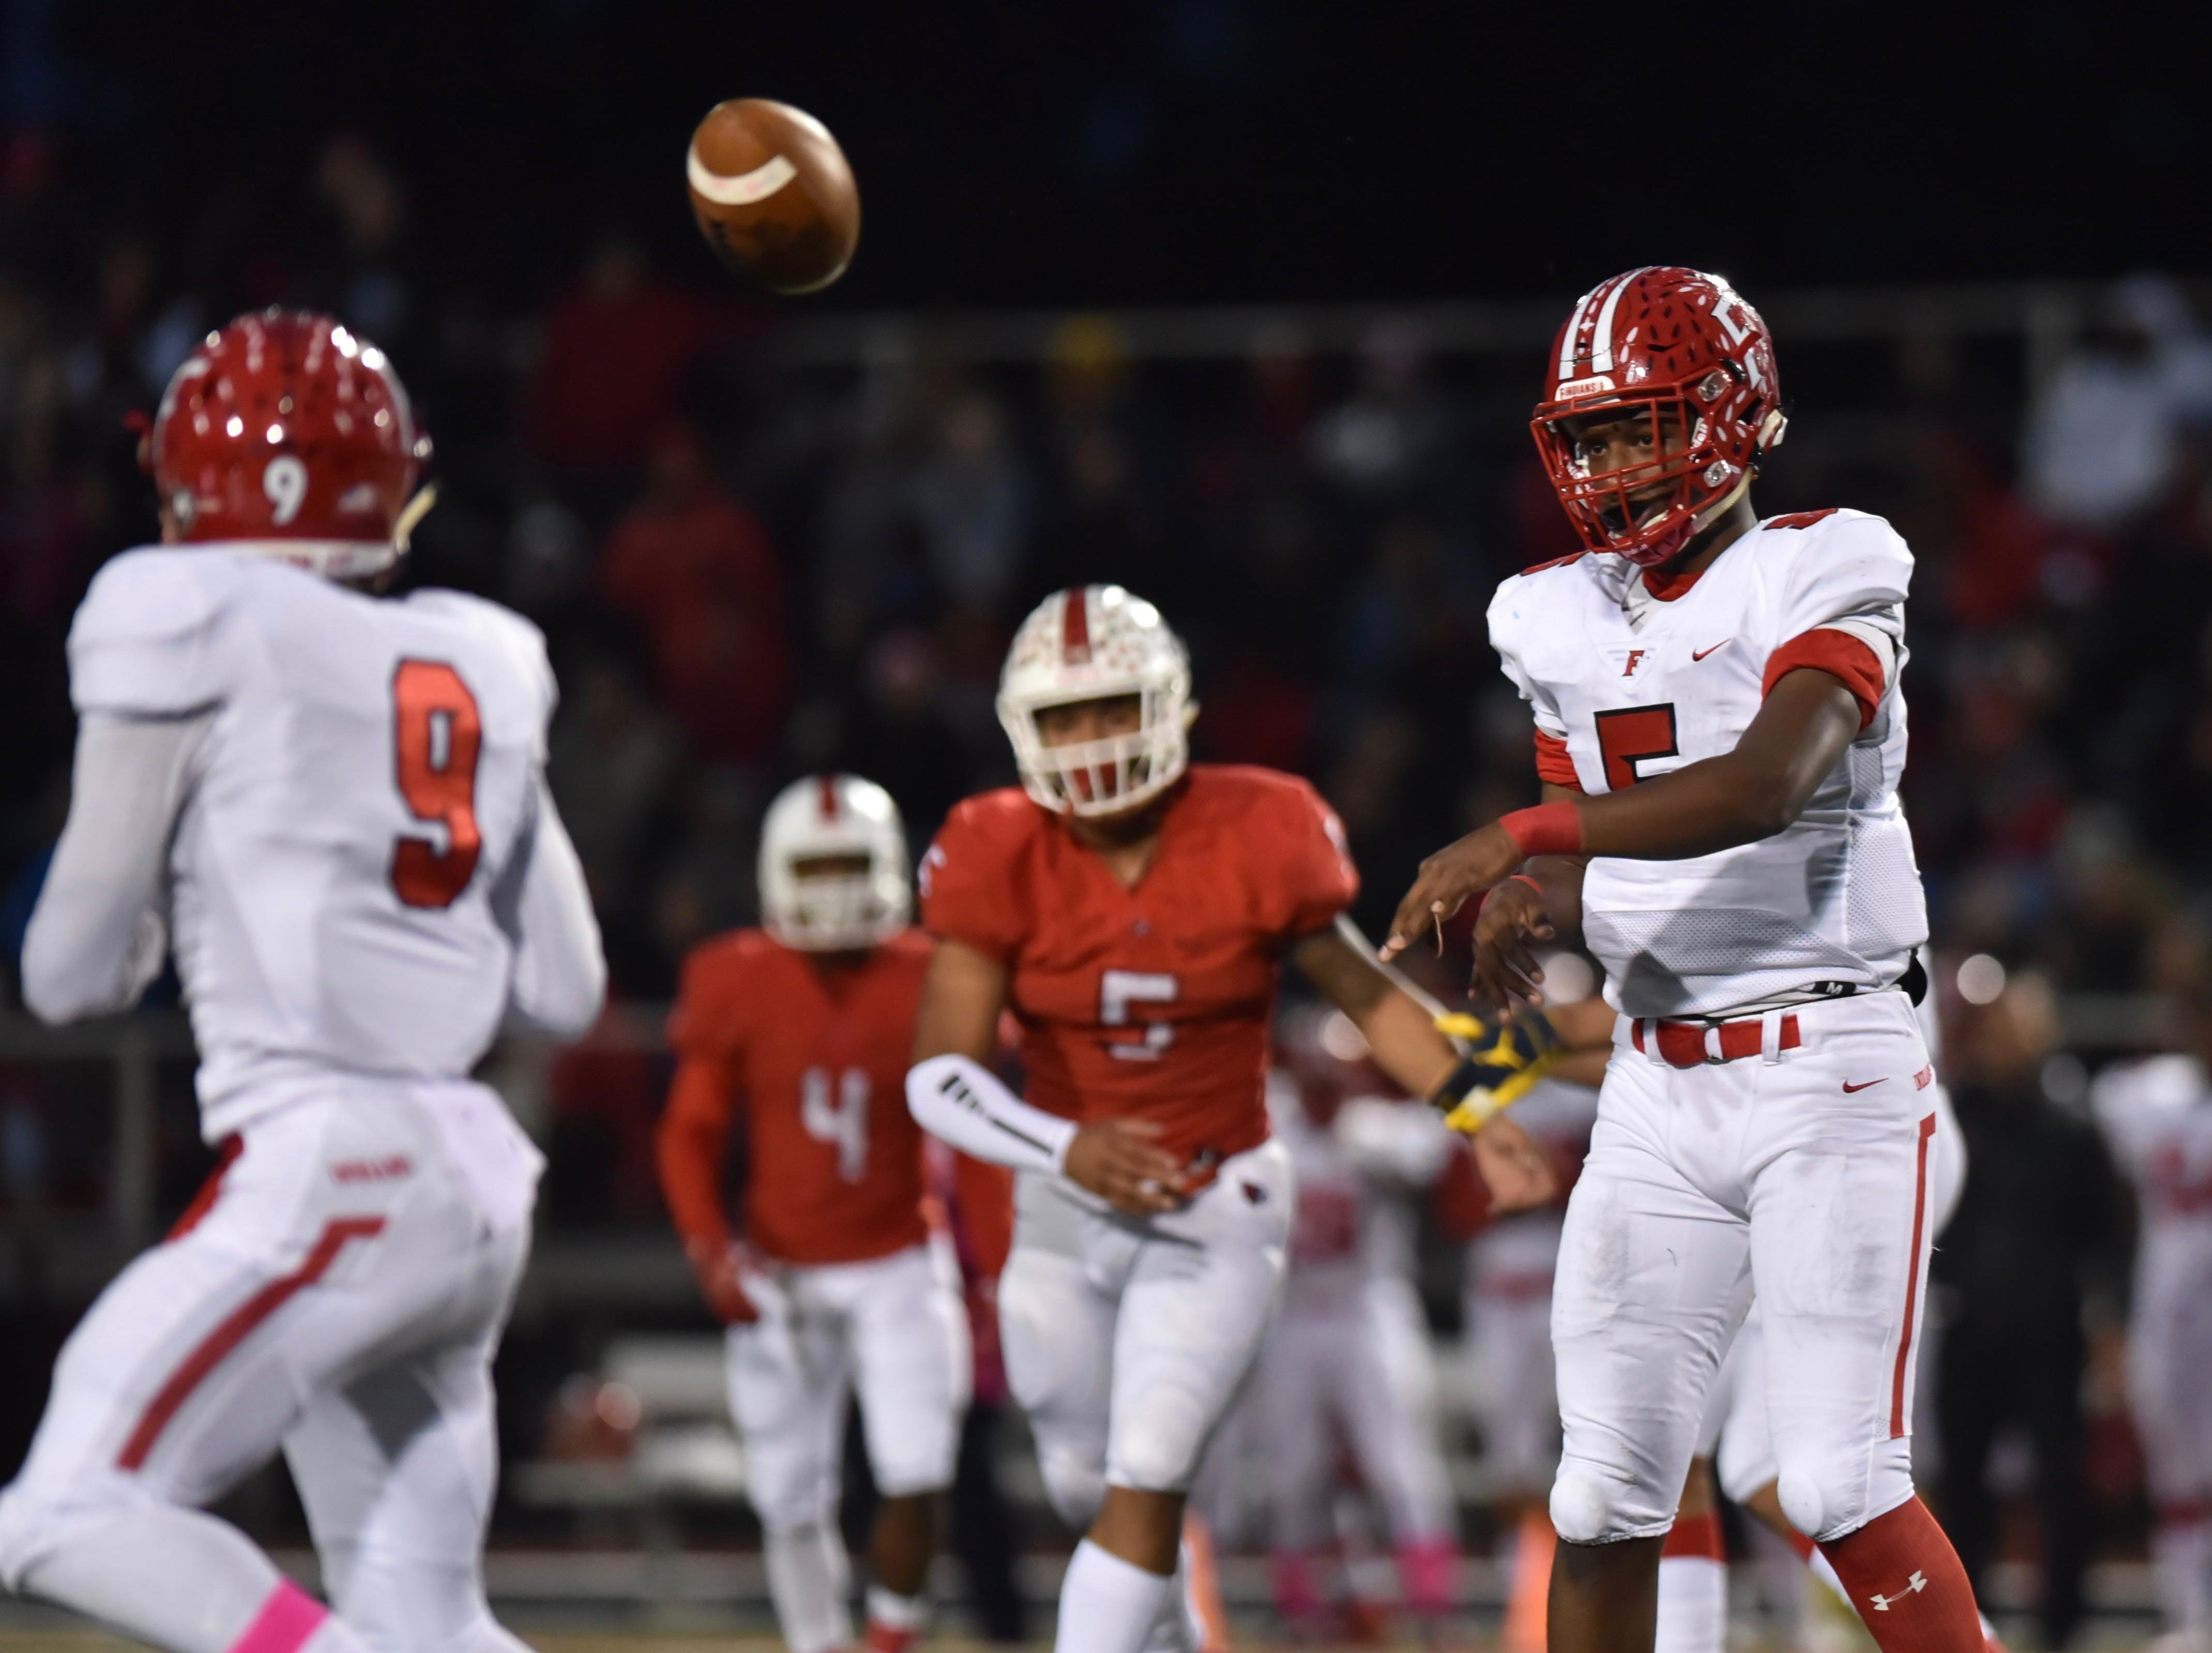 Fairfield's Jeff Tyus passes the ball to Jutahn McClain in the first quarter against Colerain Friday, Oct. 19, 2018 at Colerain High School